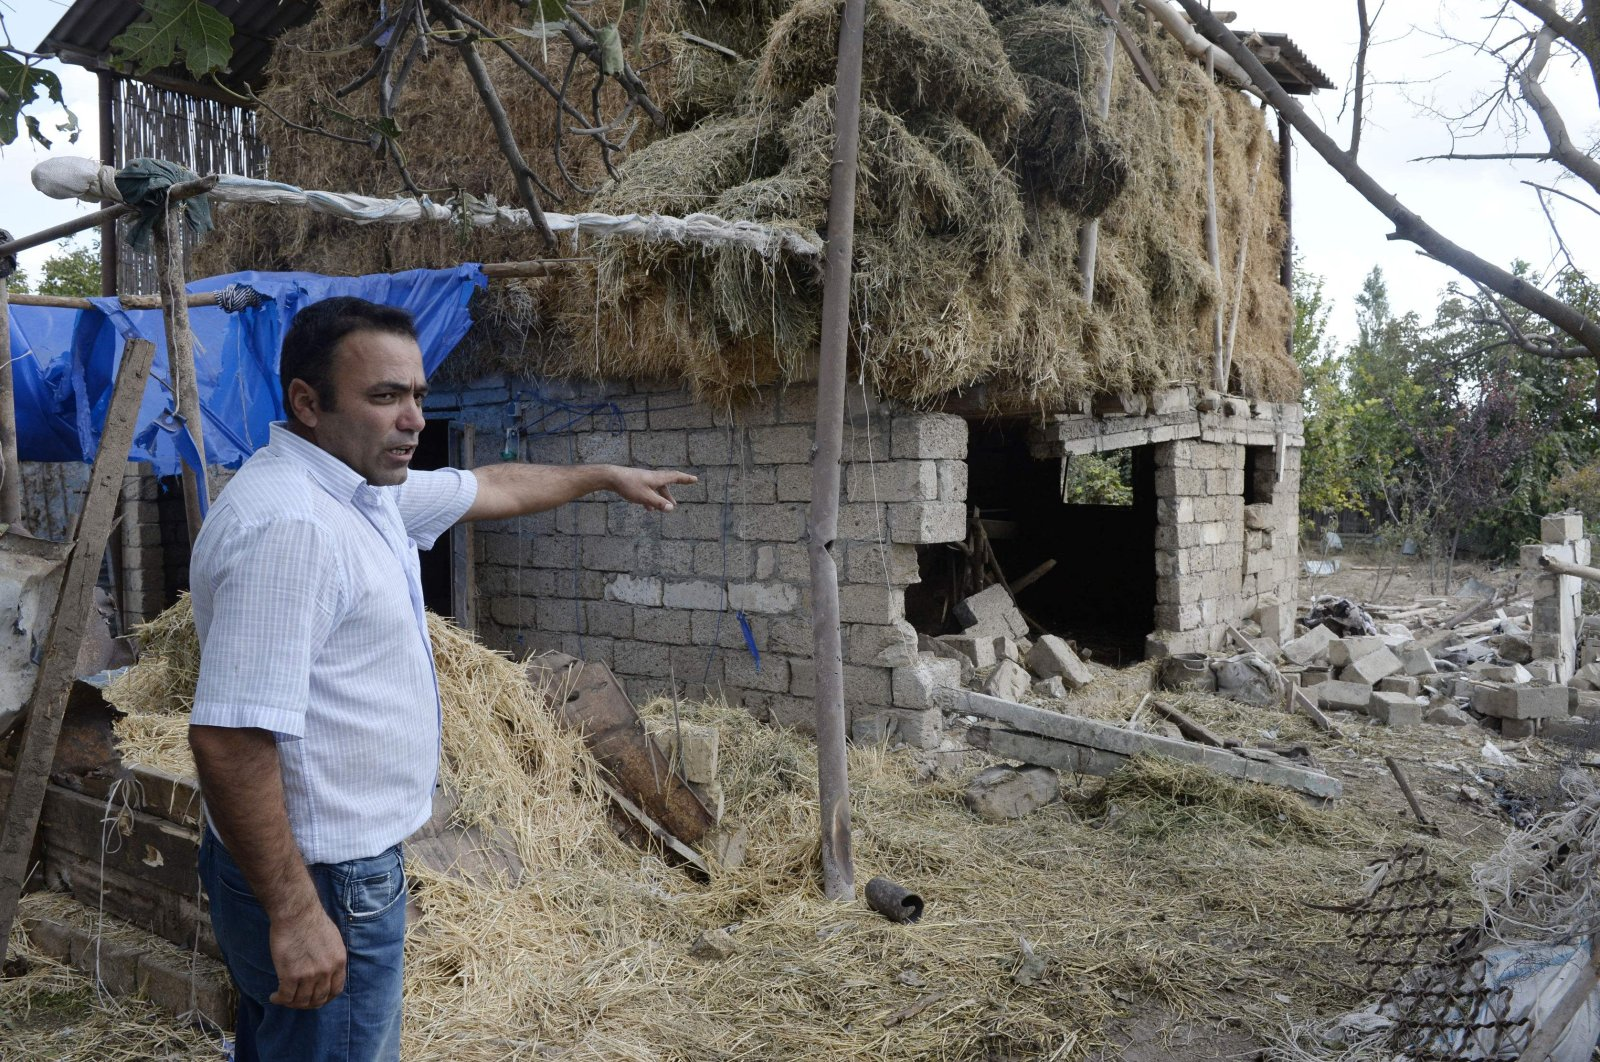 A man points to a house reportedly damaged by the recent fighting between Armenia and Azerbaijan over the Armenian occupied Nagorno-Karabakh region, in the settlement of Zorocuq in Azerbaijan's Fuzuli district, Sept. 30, 2020. (AFP Photo)